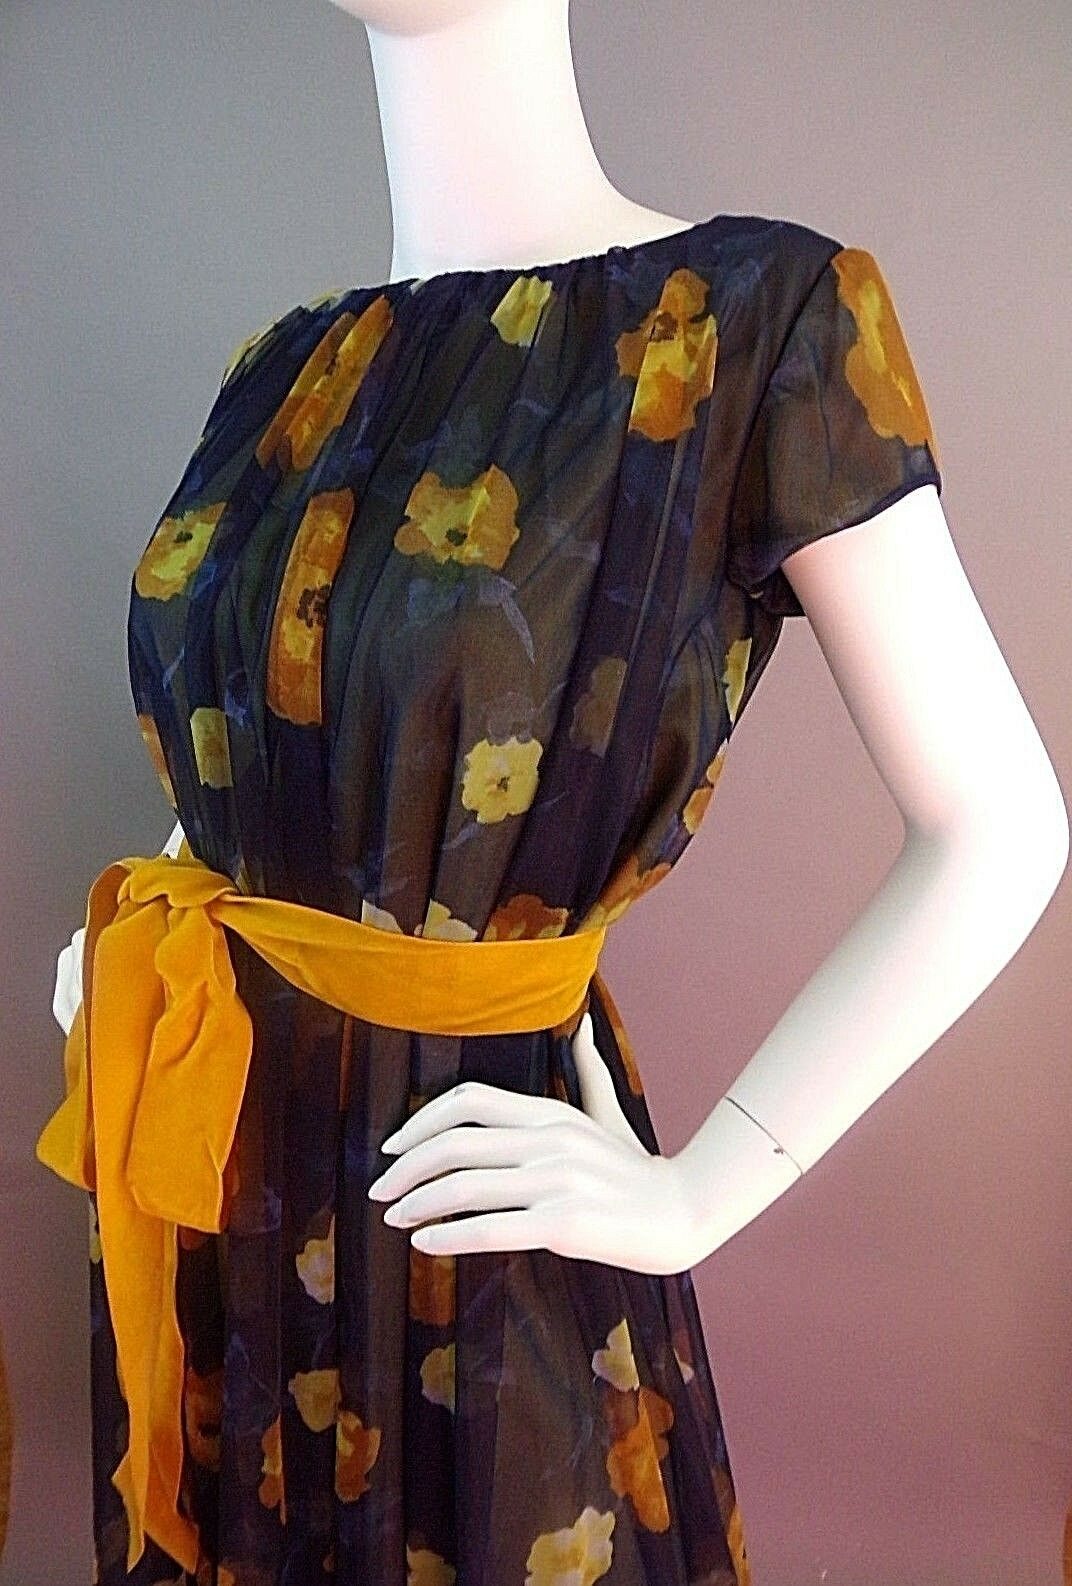 VINTAGE LUCIE ANN BEVERLY HILLS 1950s NIGHTGOWN - image 2